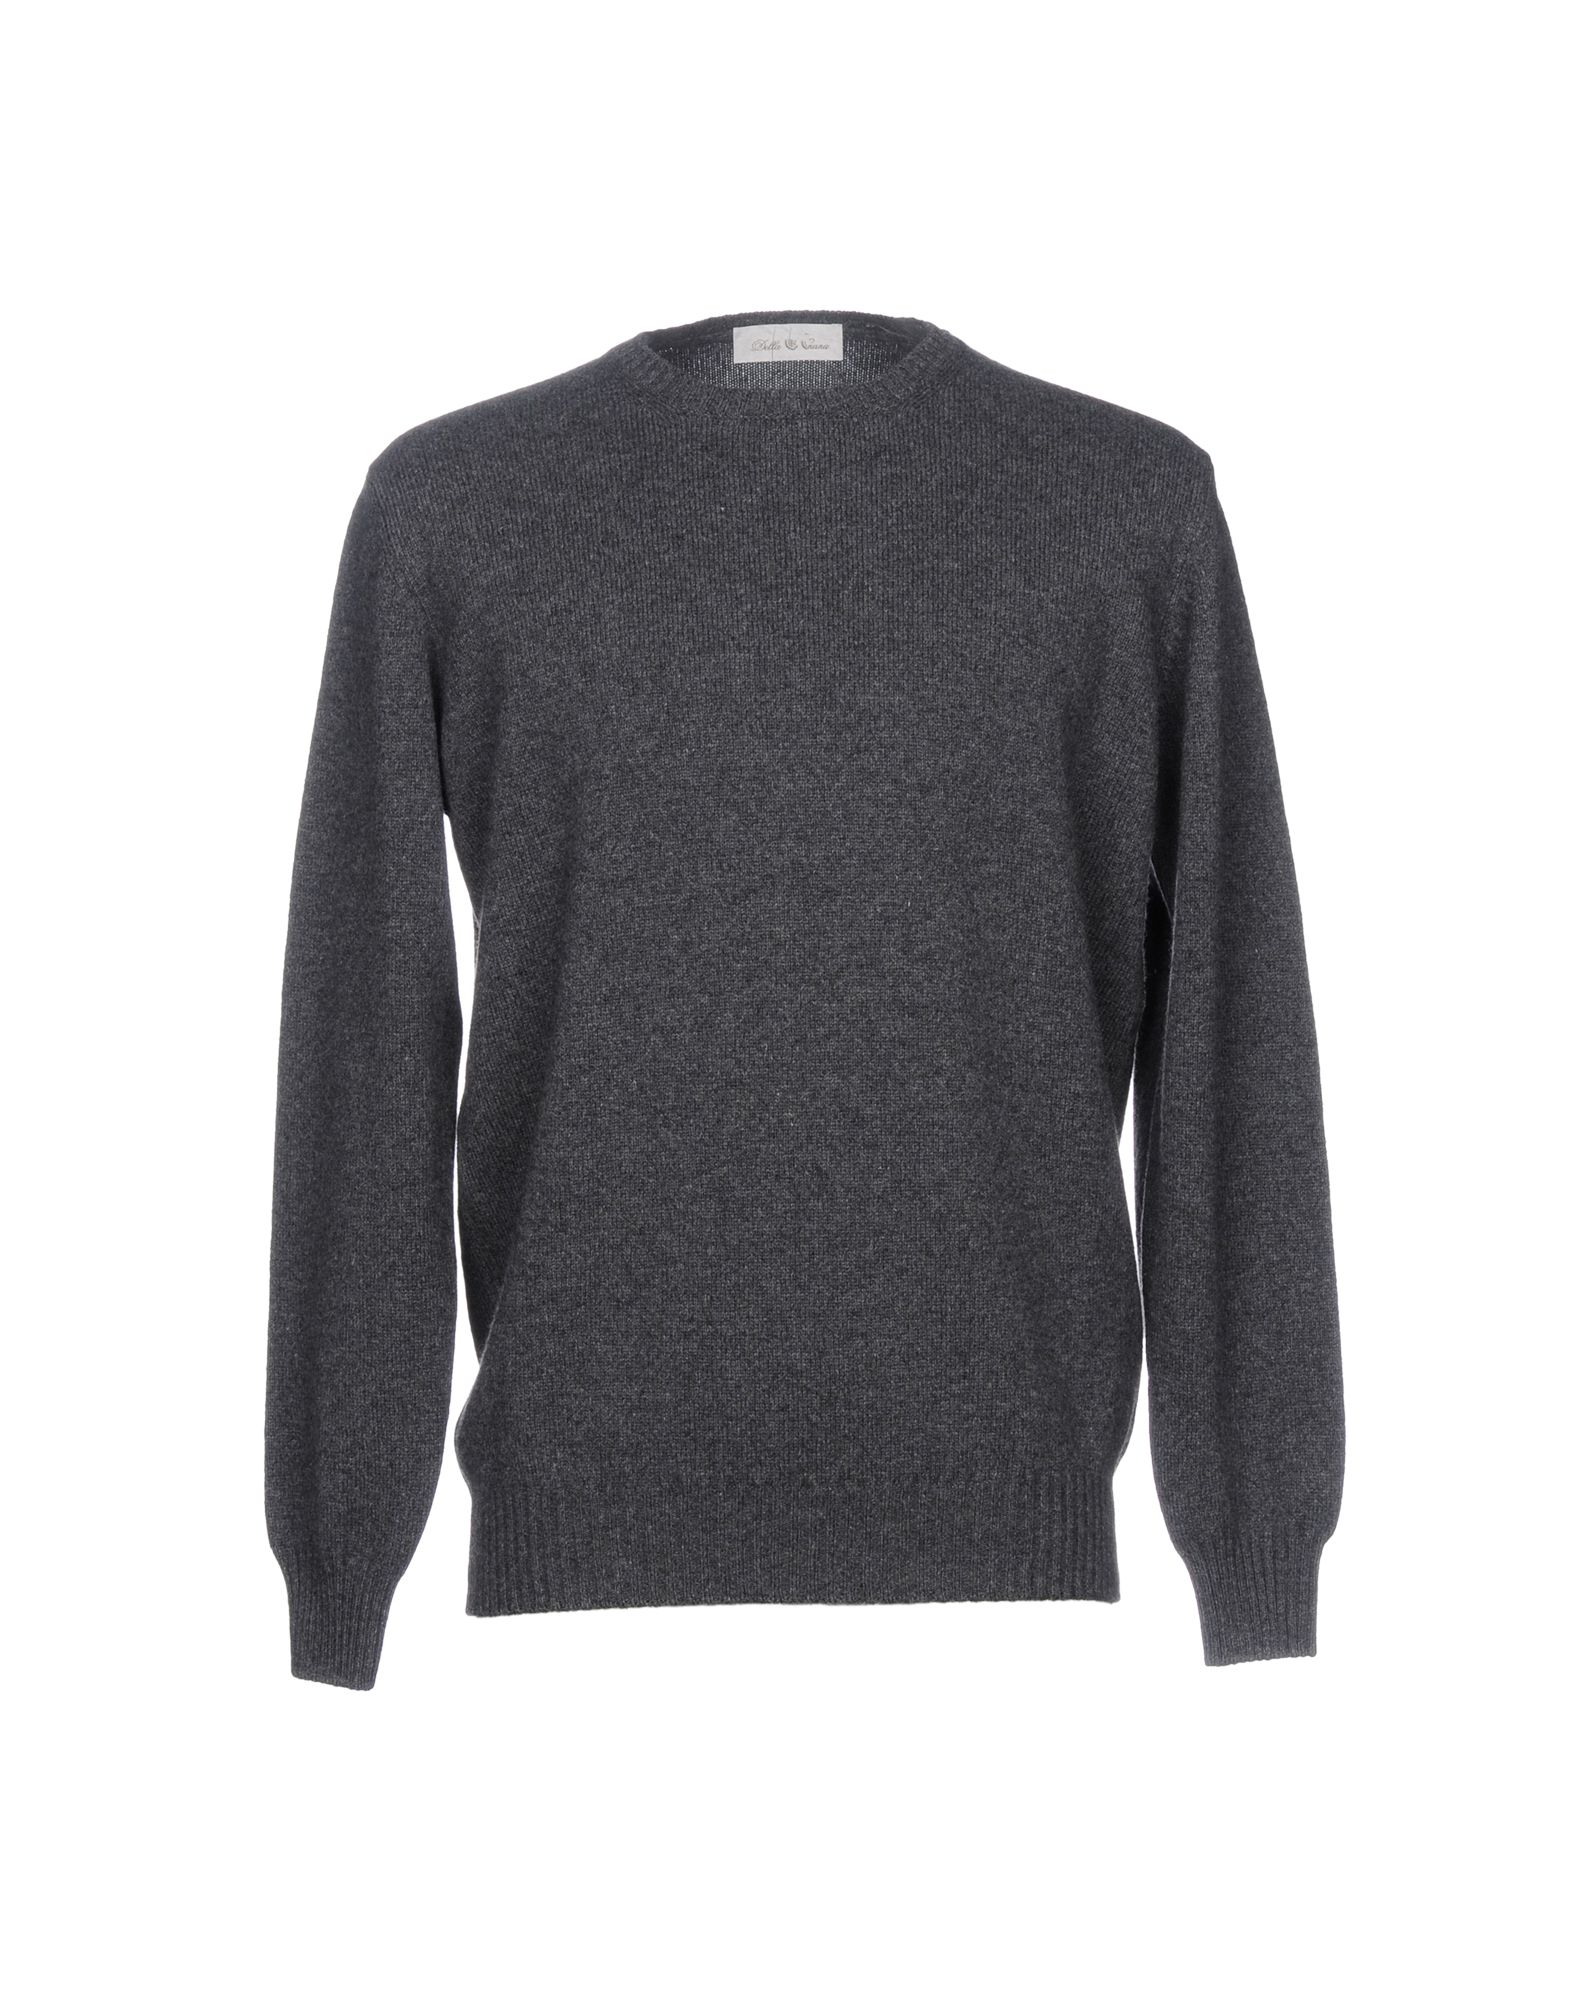 Della Ciana Men Spring-Summer and Fall-Winter Collections - Shop online at  YOOX